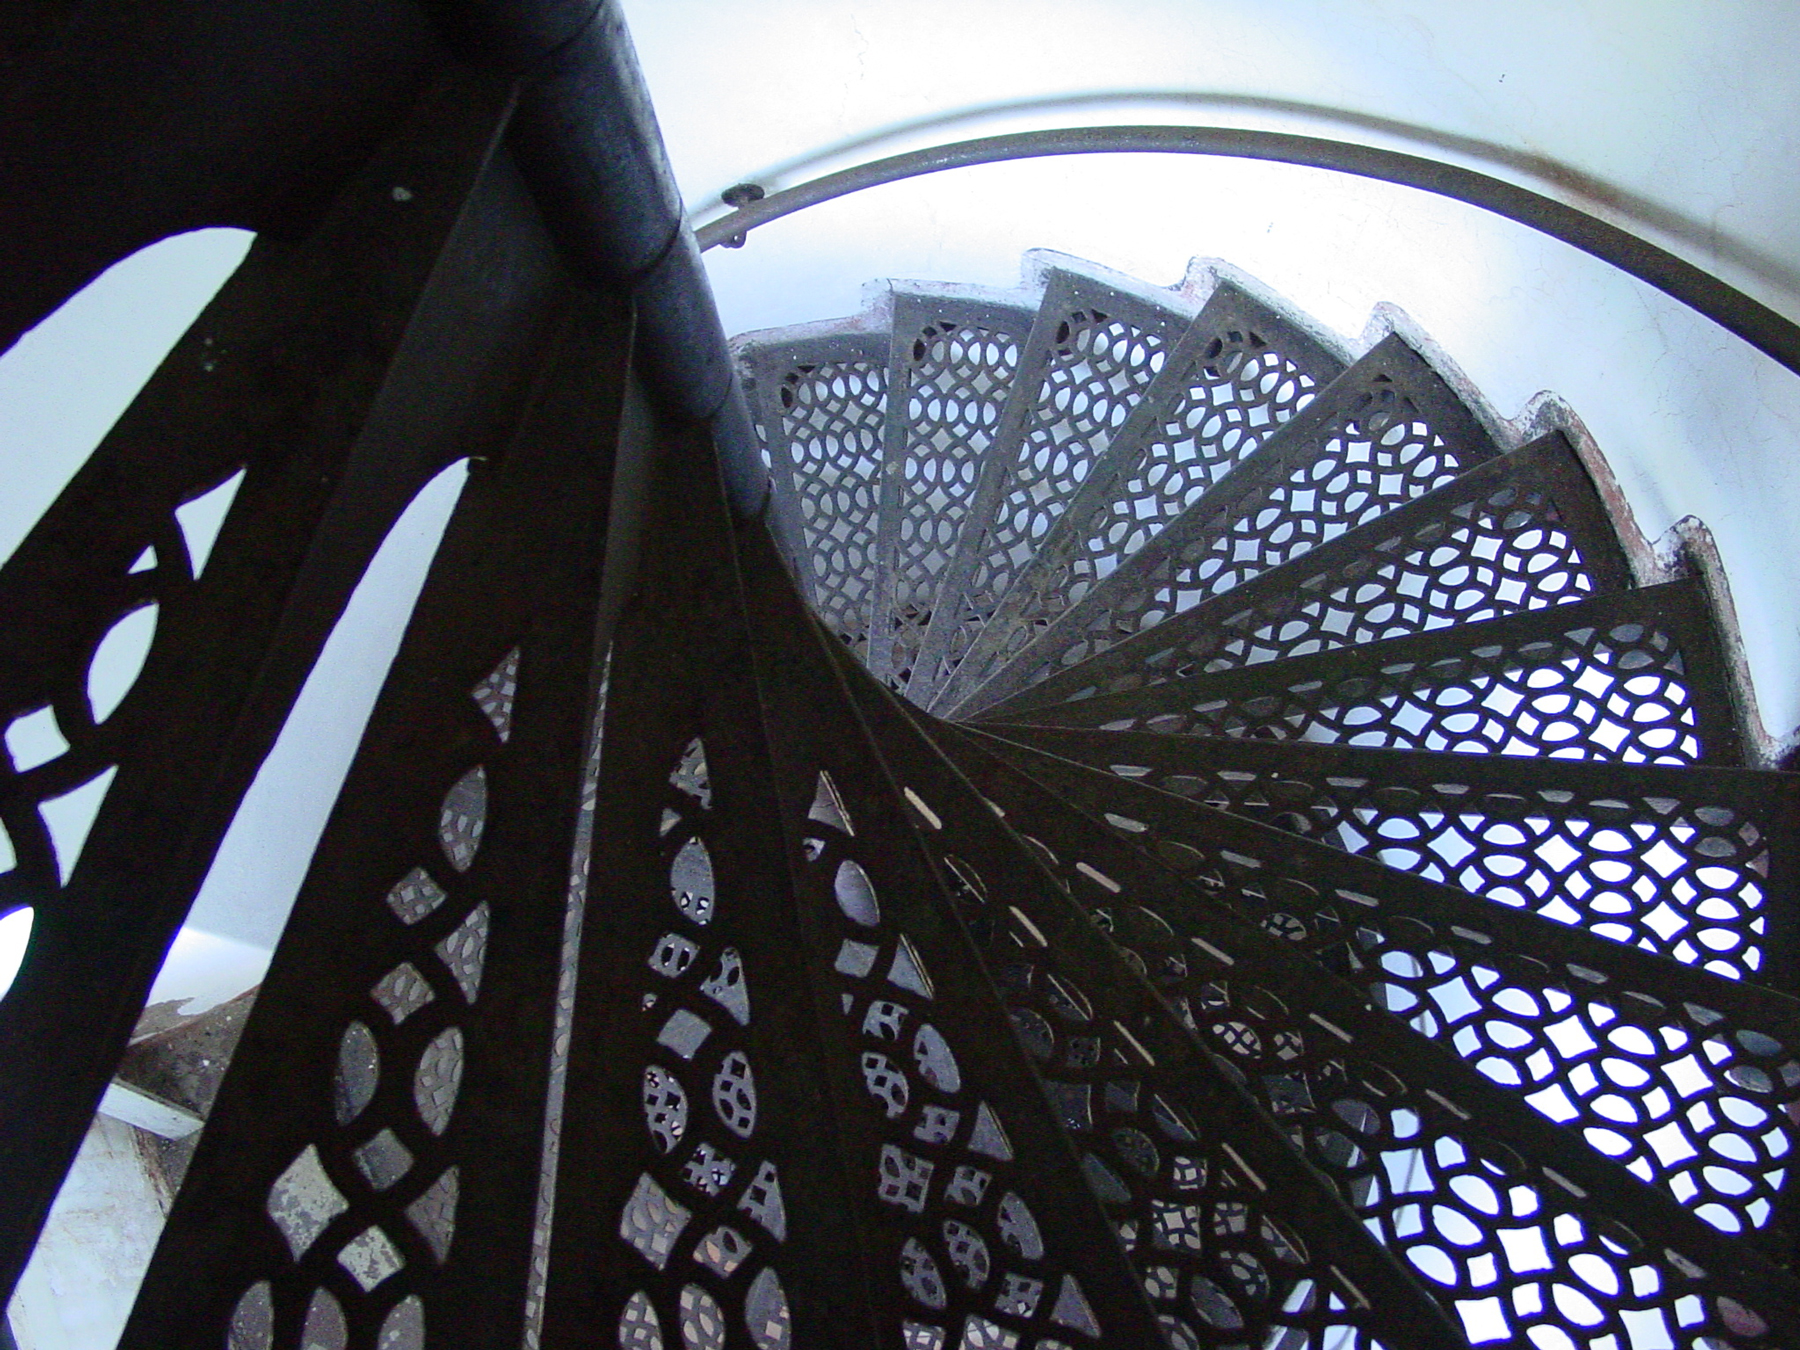 Outer Island light stairs